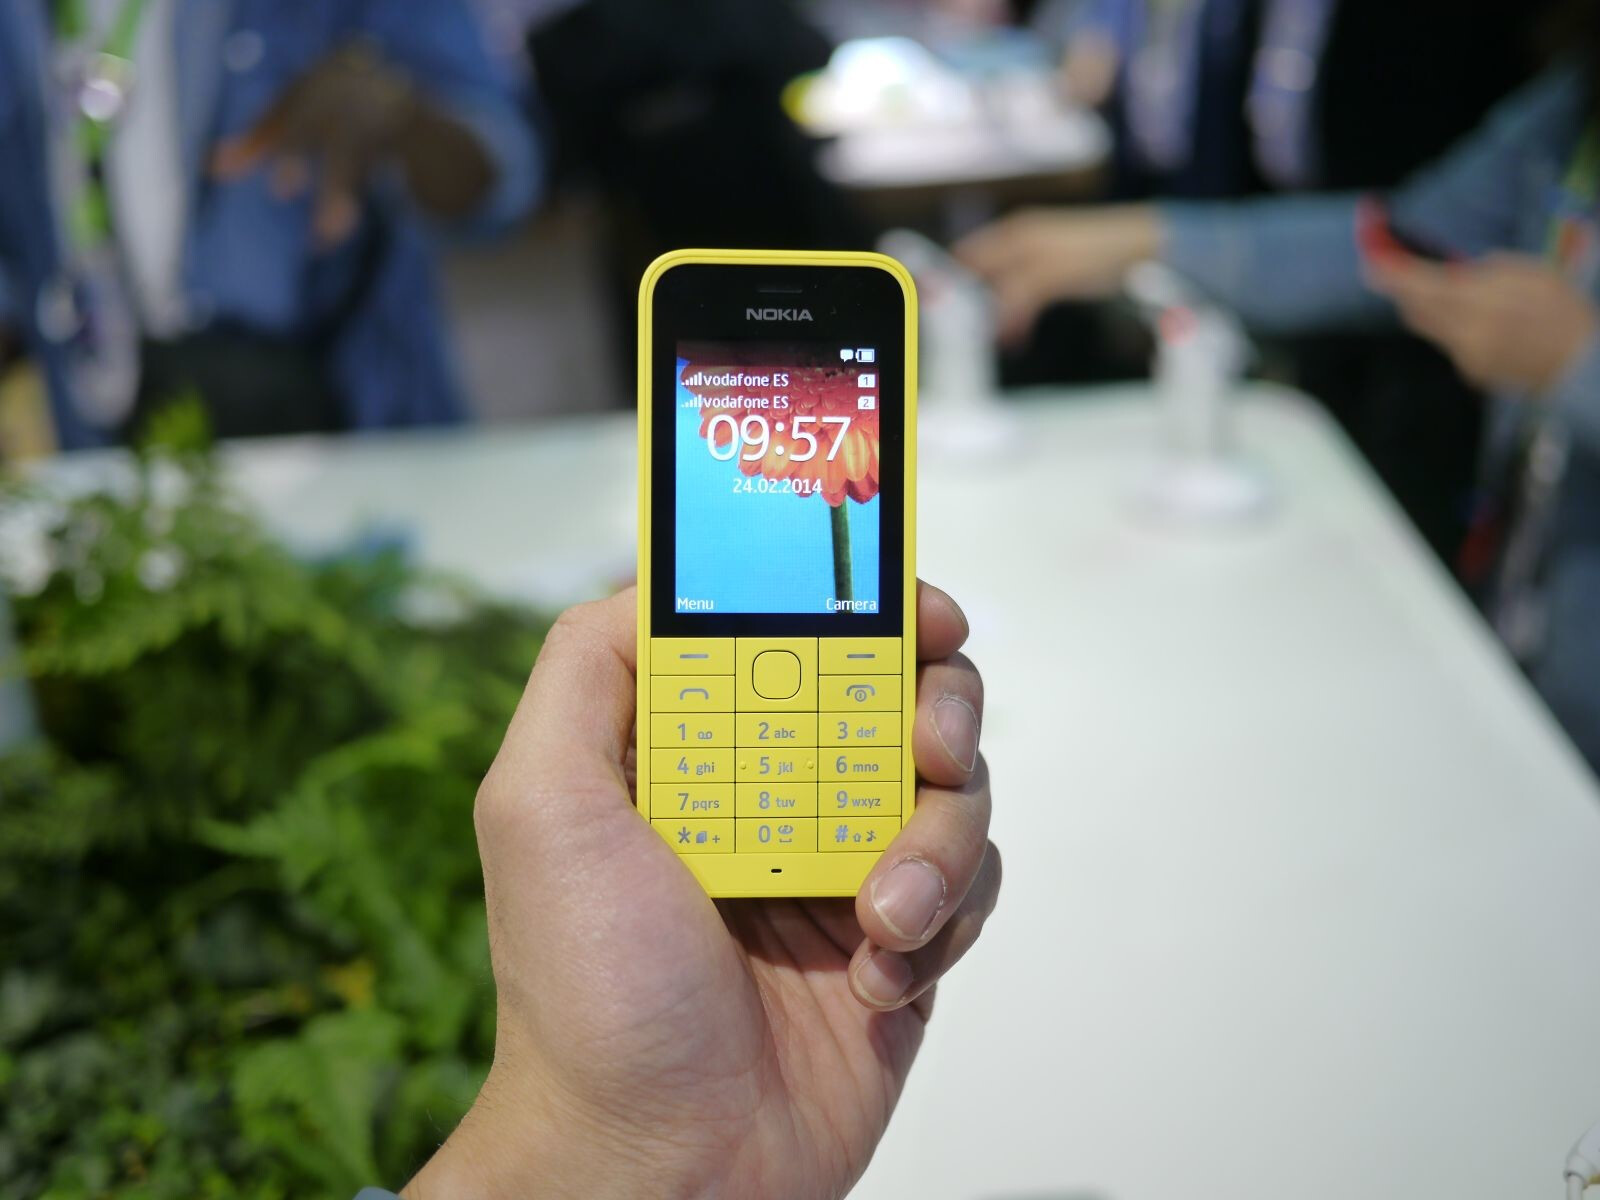 Whatsapp for, nokia 220 How can i download whatsapp for, nokia 220? Nokia 220 - User opinions and reviews